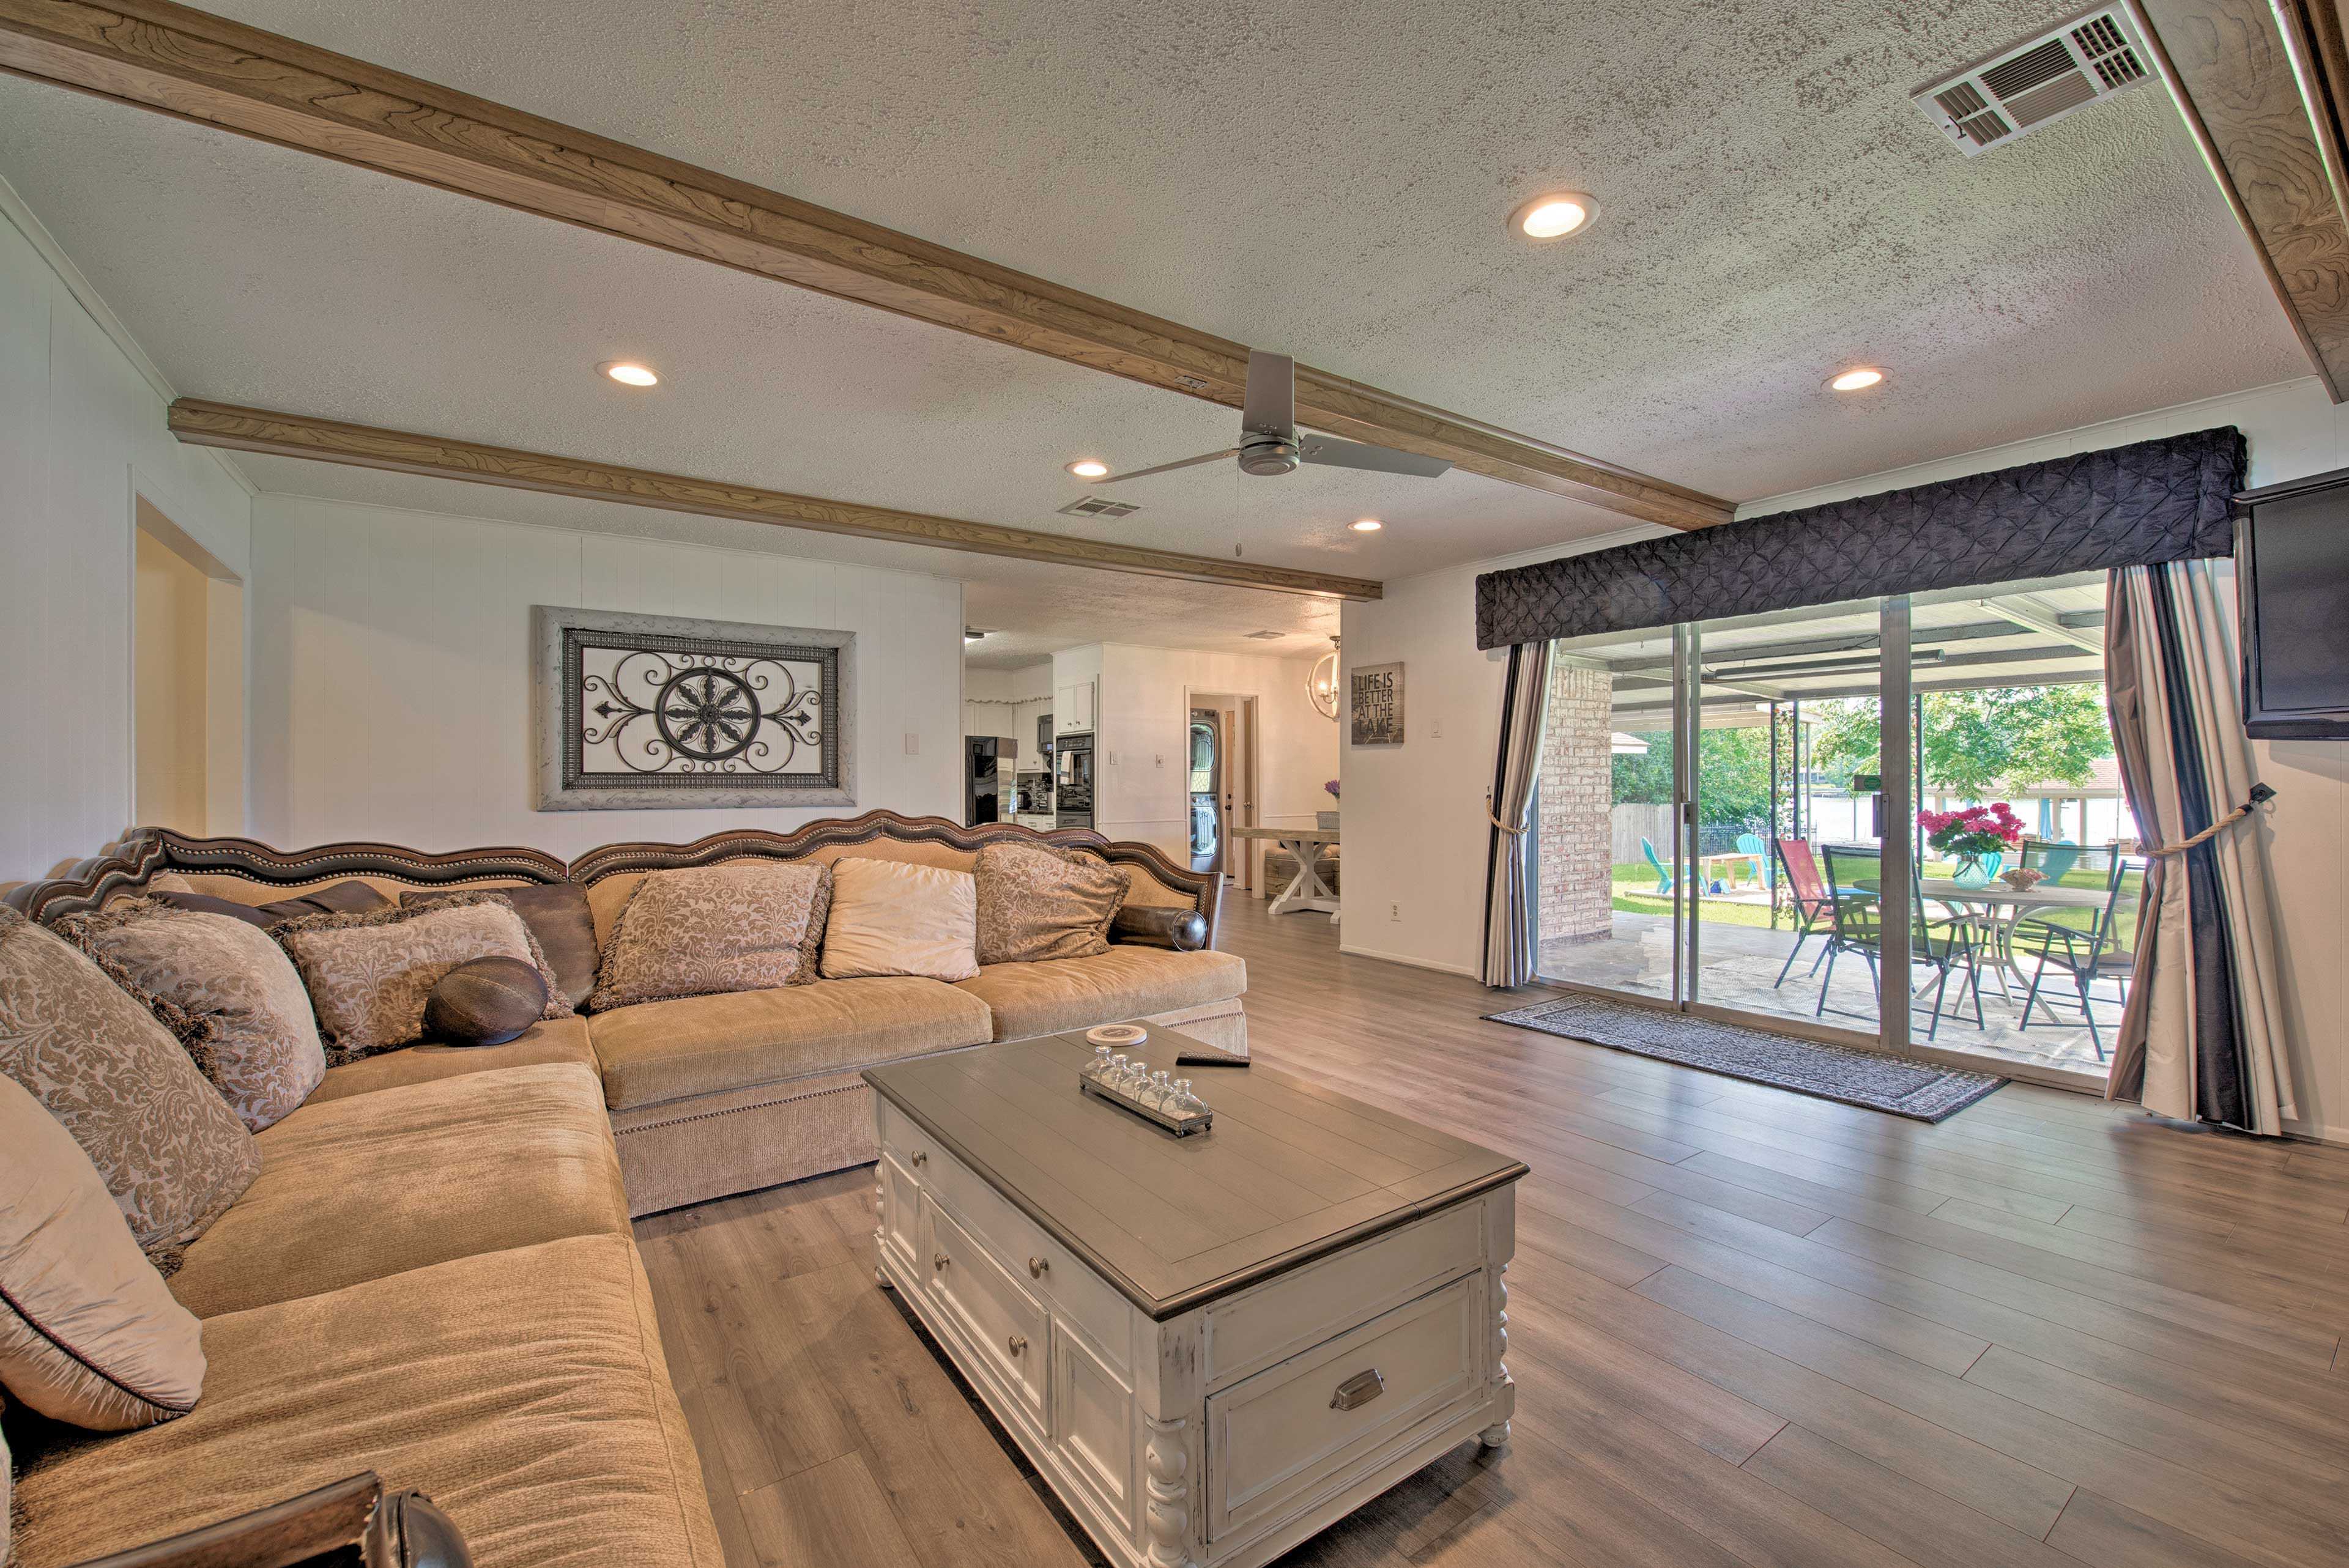 The large L-shaped sectional provides a seat for everyone!